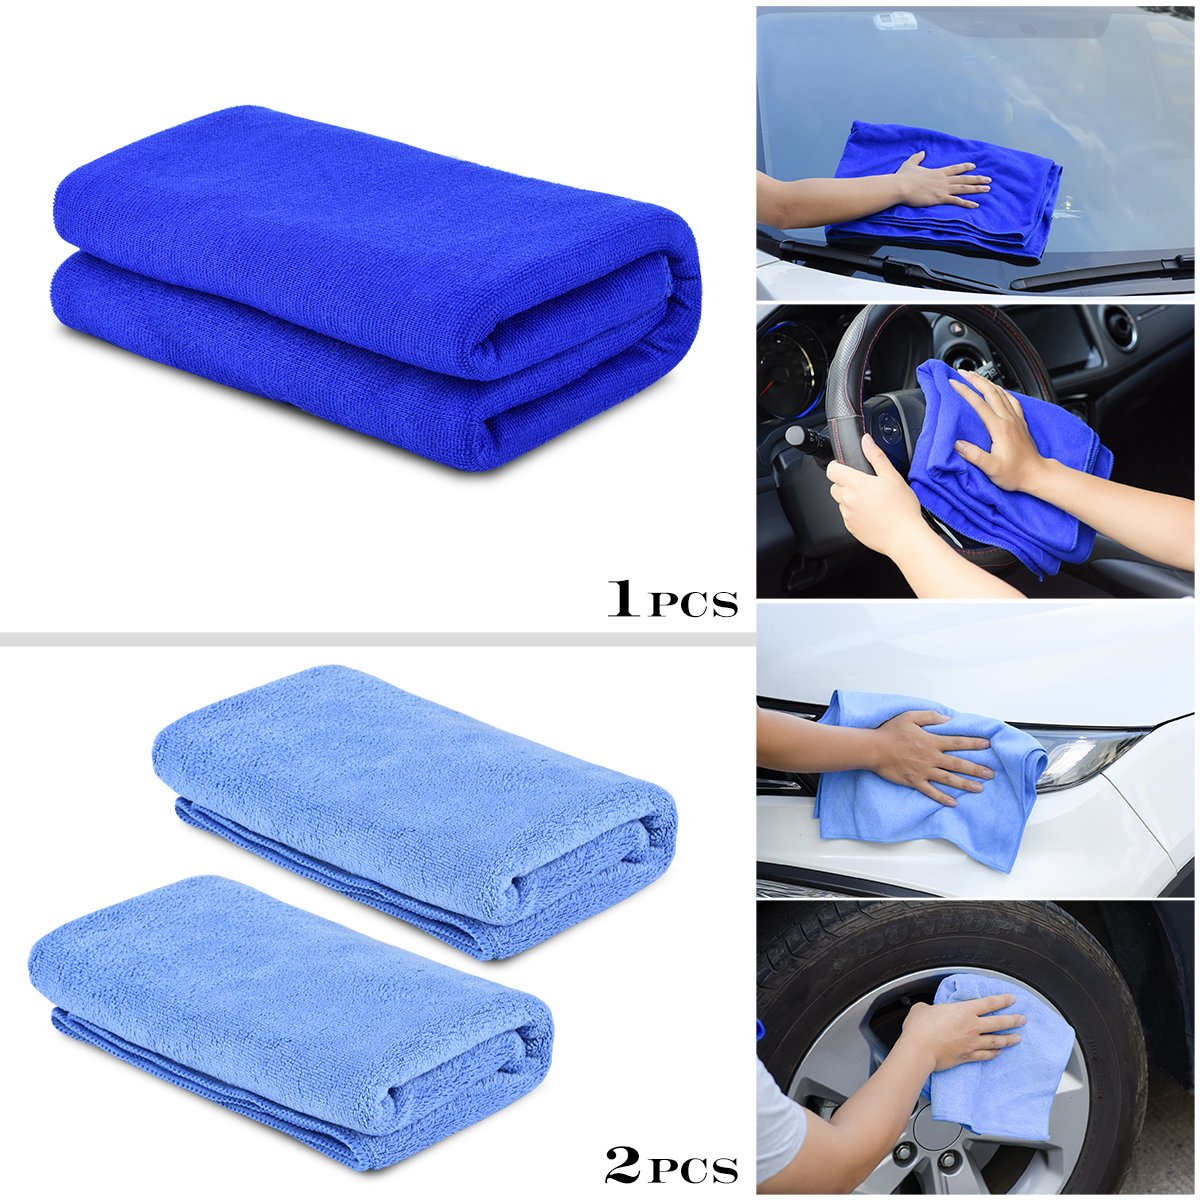 Wietus Microfiber Car Cleaning Towel Fast Drying Auto Datailing Towel All-Purpose Home & Car Cleaning Scratch & Dust-Free, 3-pack (Long*1pcs, Short*2pcs)